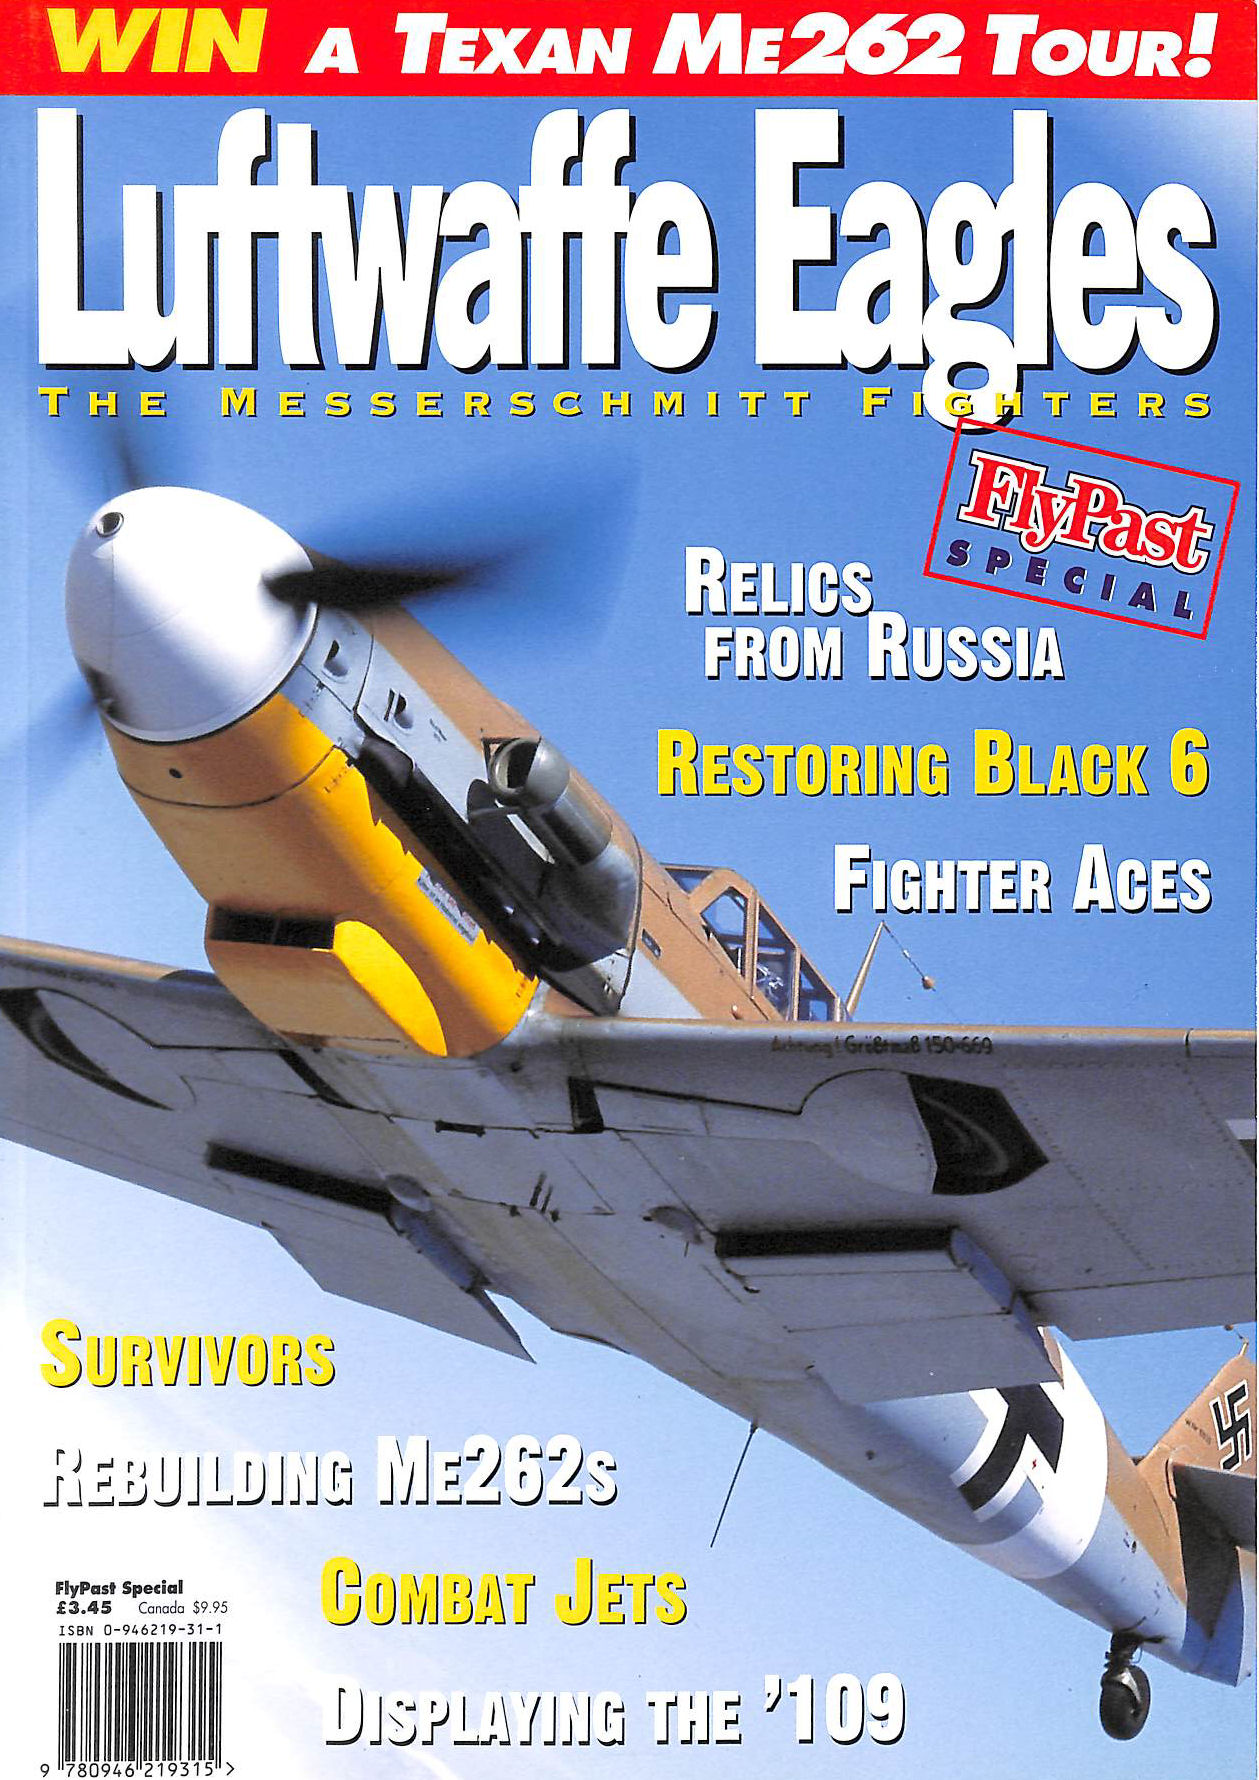 Image for Luftwaffe Eagles | The Messerschmitt Fighters | Flypast Special